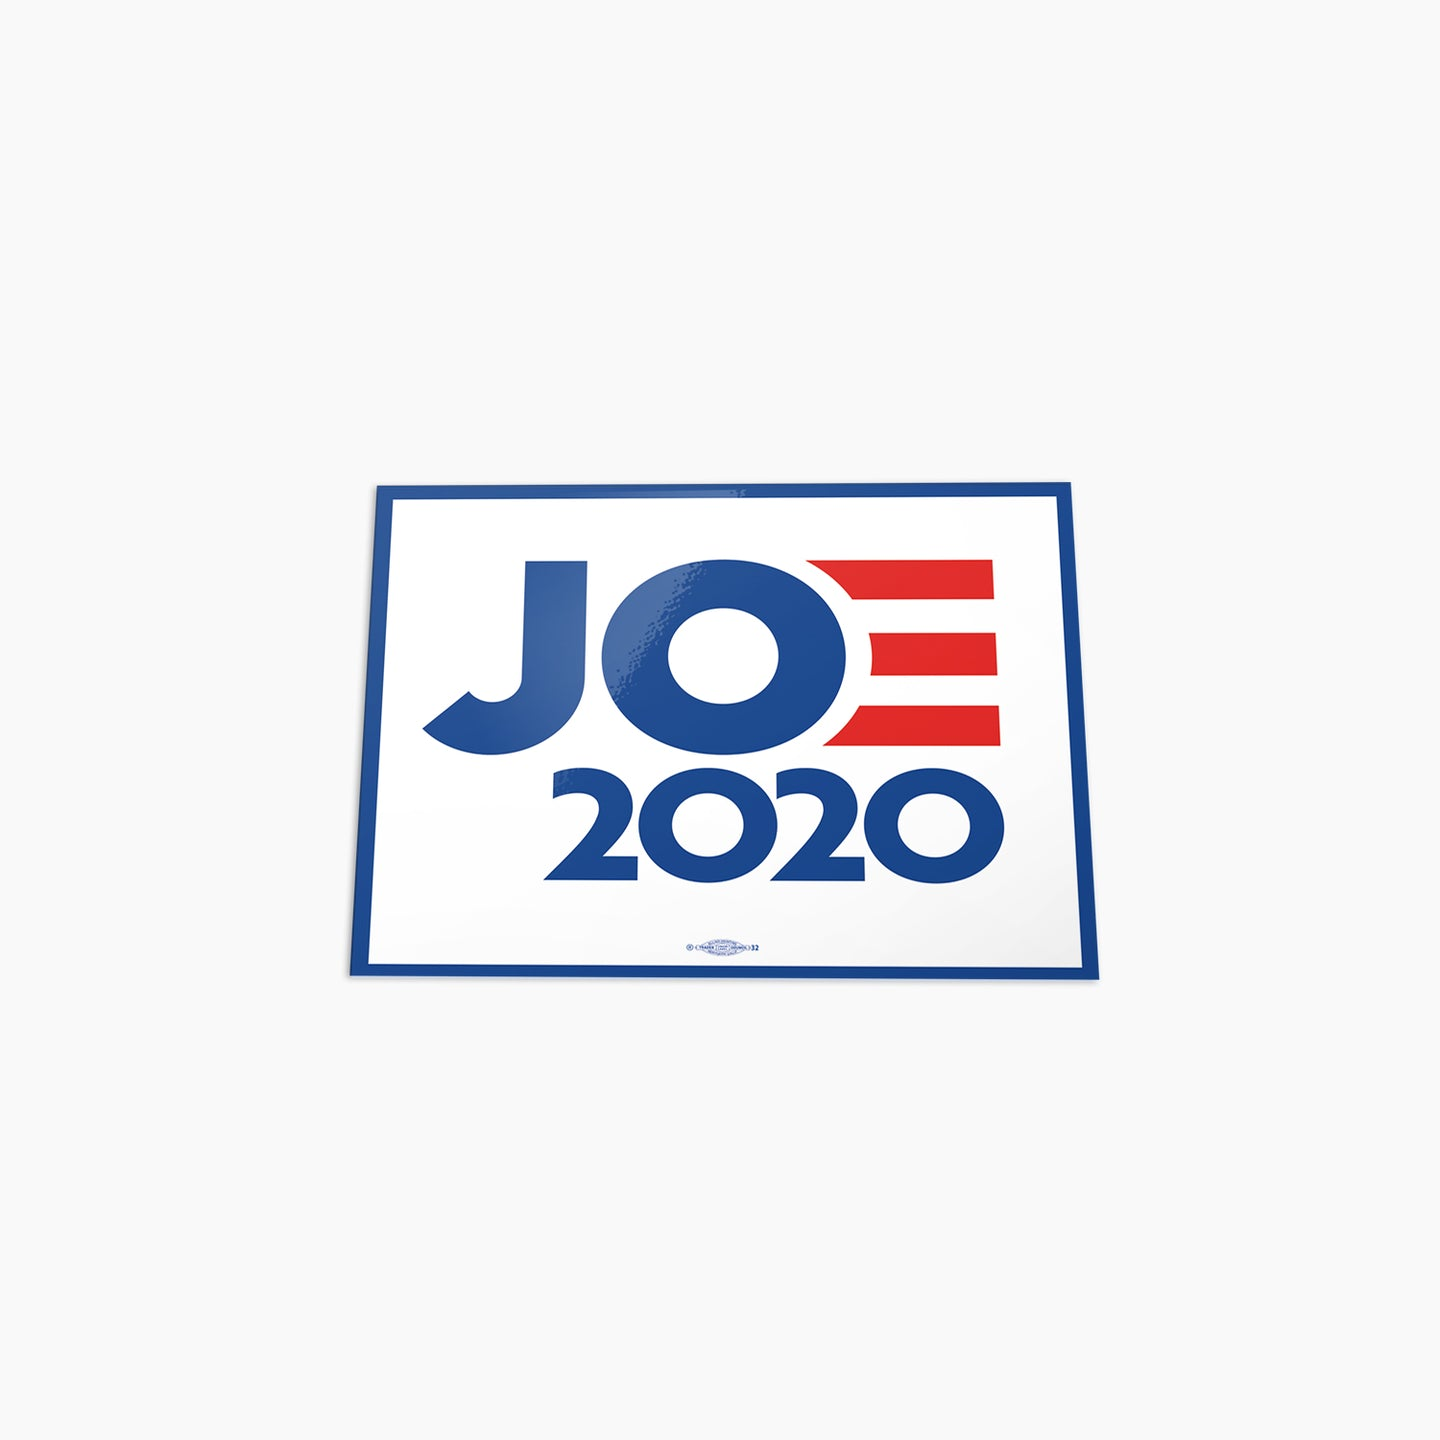 Joe 2020 Bumper Sticker